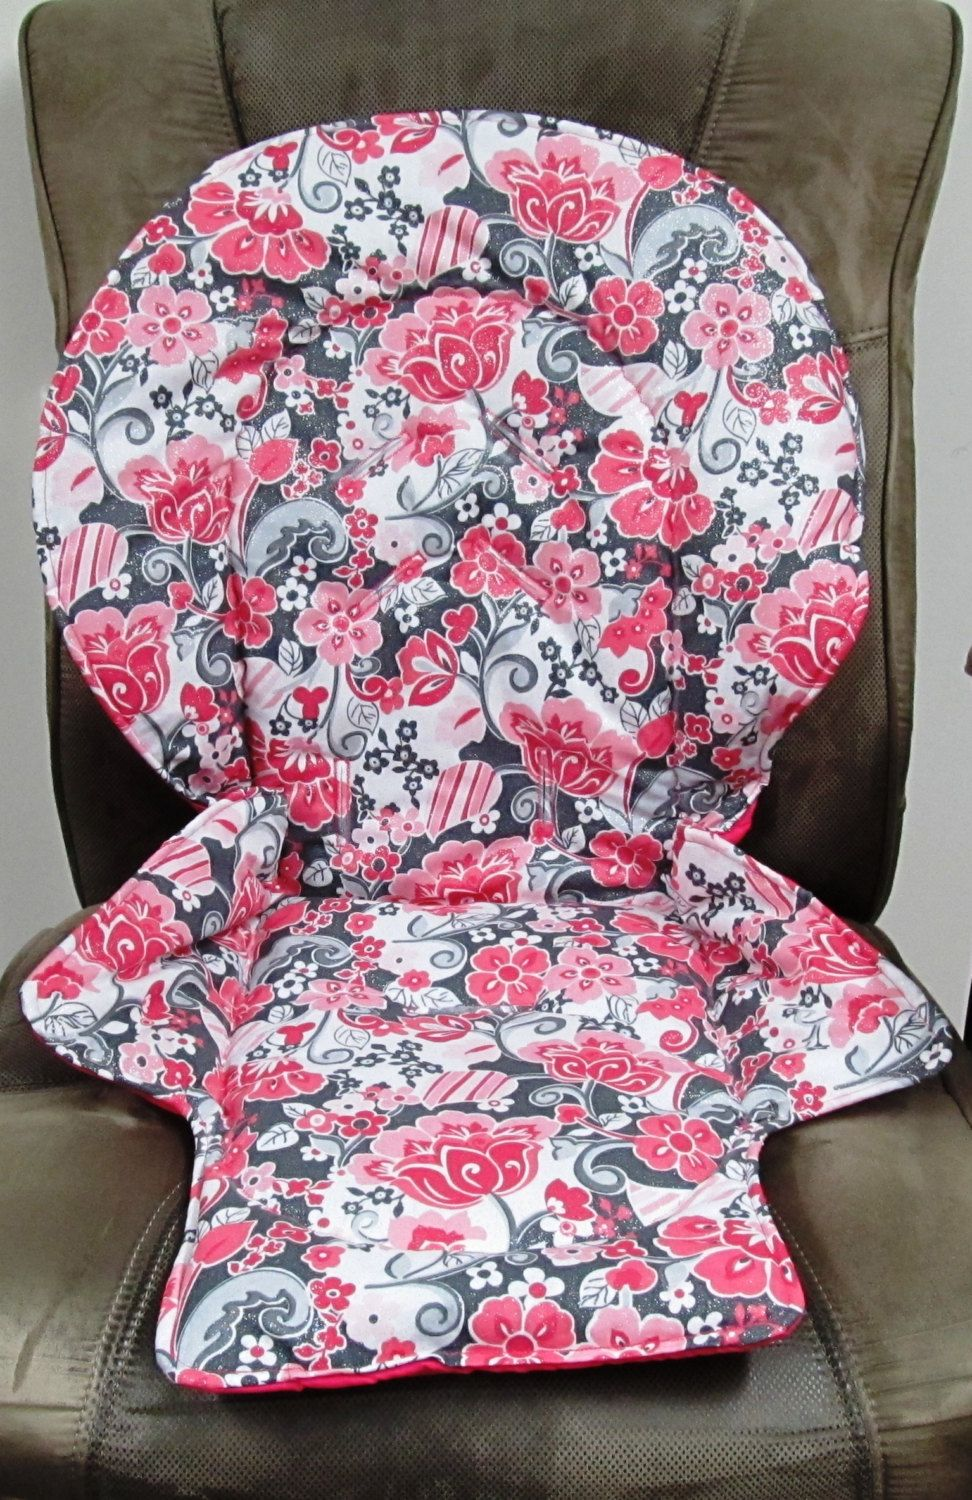 Baby Trend Replacement Cover High Chair Pad Accessory Cushion Kids And Feeding Custom Sparkling Rose By Sewingsilly